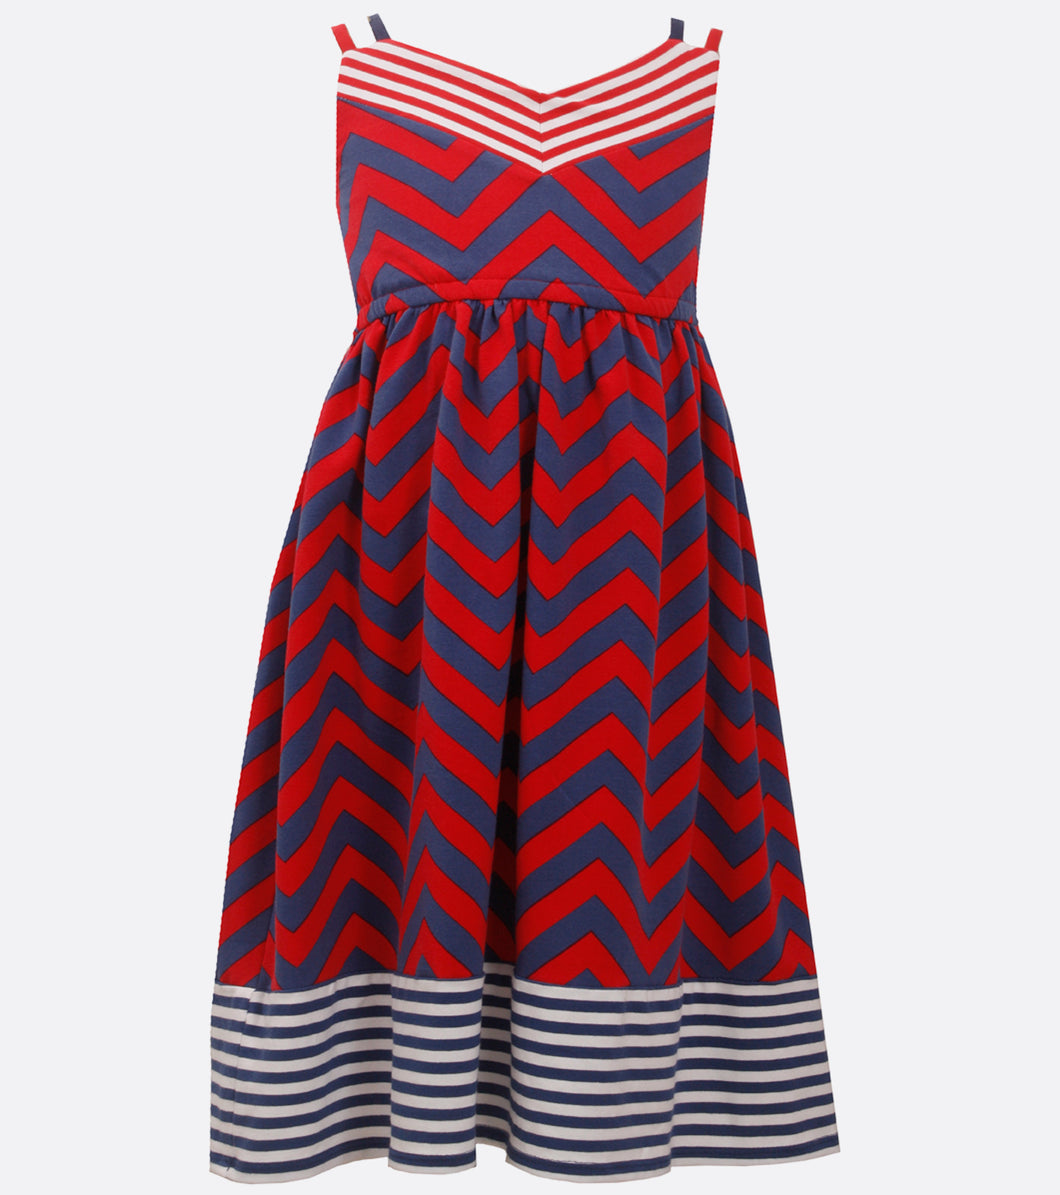 Bonnie Jean red white and blue stripe dress